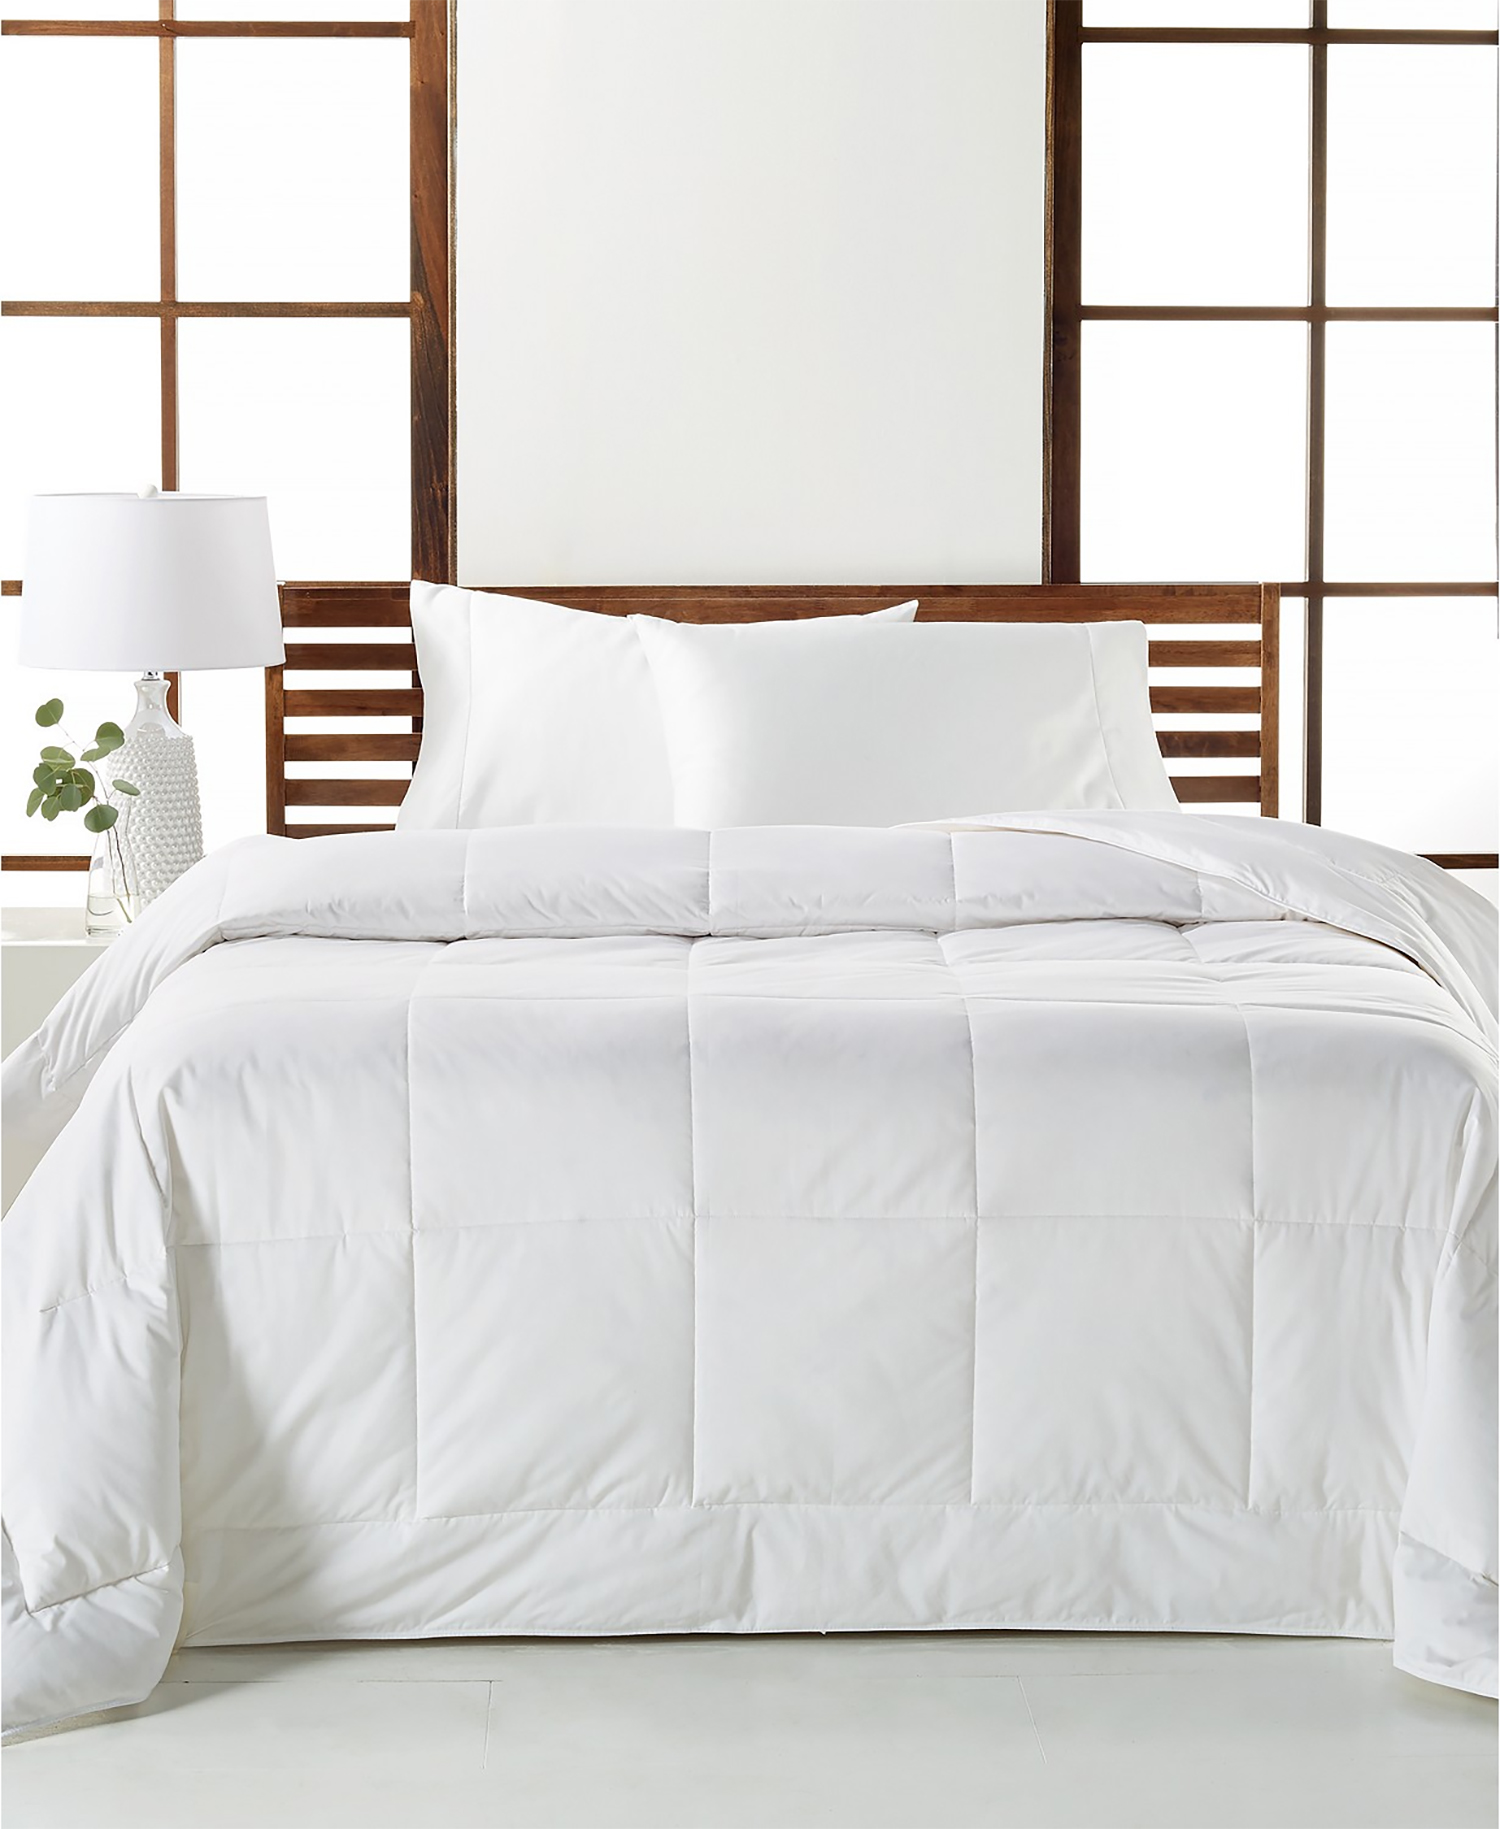 PSA: Luxury Bedding Is Up To 70% Off At Macy's Epic Labor Day Sale